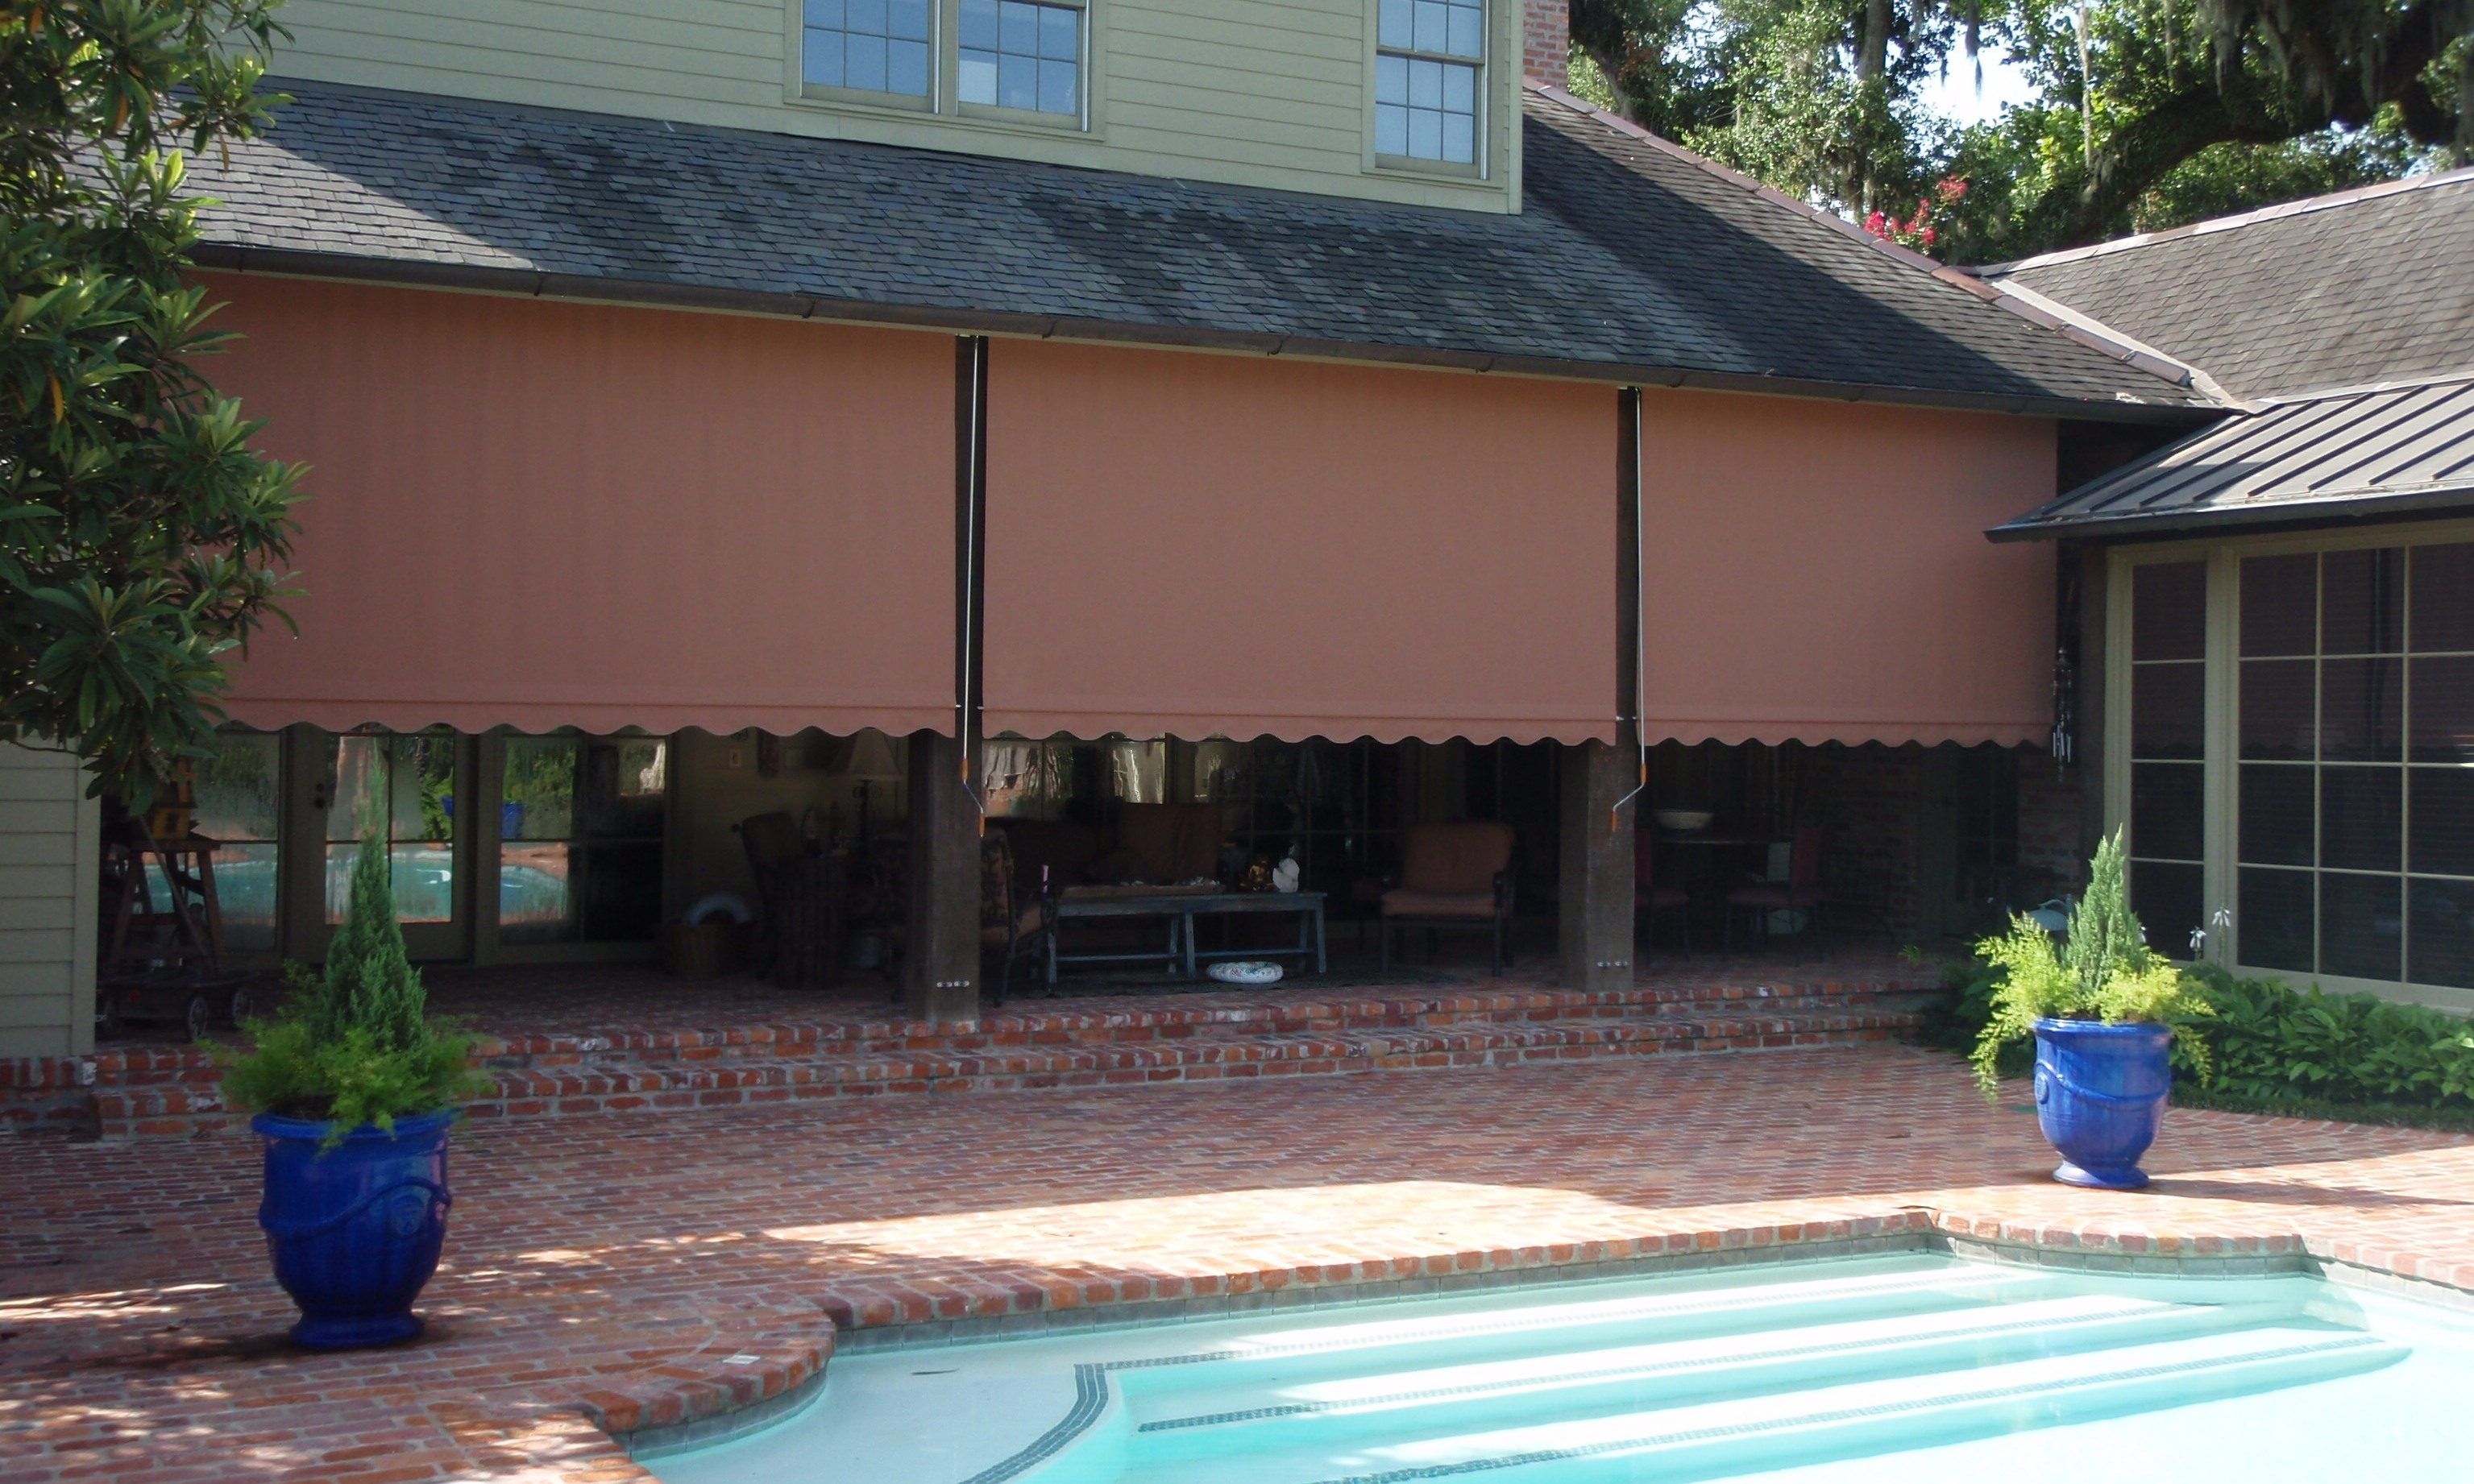 awning patios awnings alumawood pergola pin aluma for aluminum covers patio lattice metal